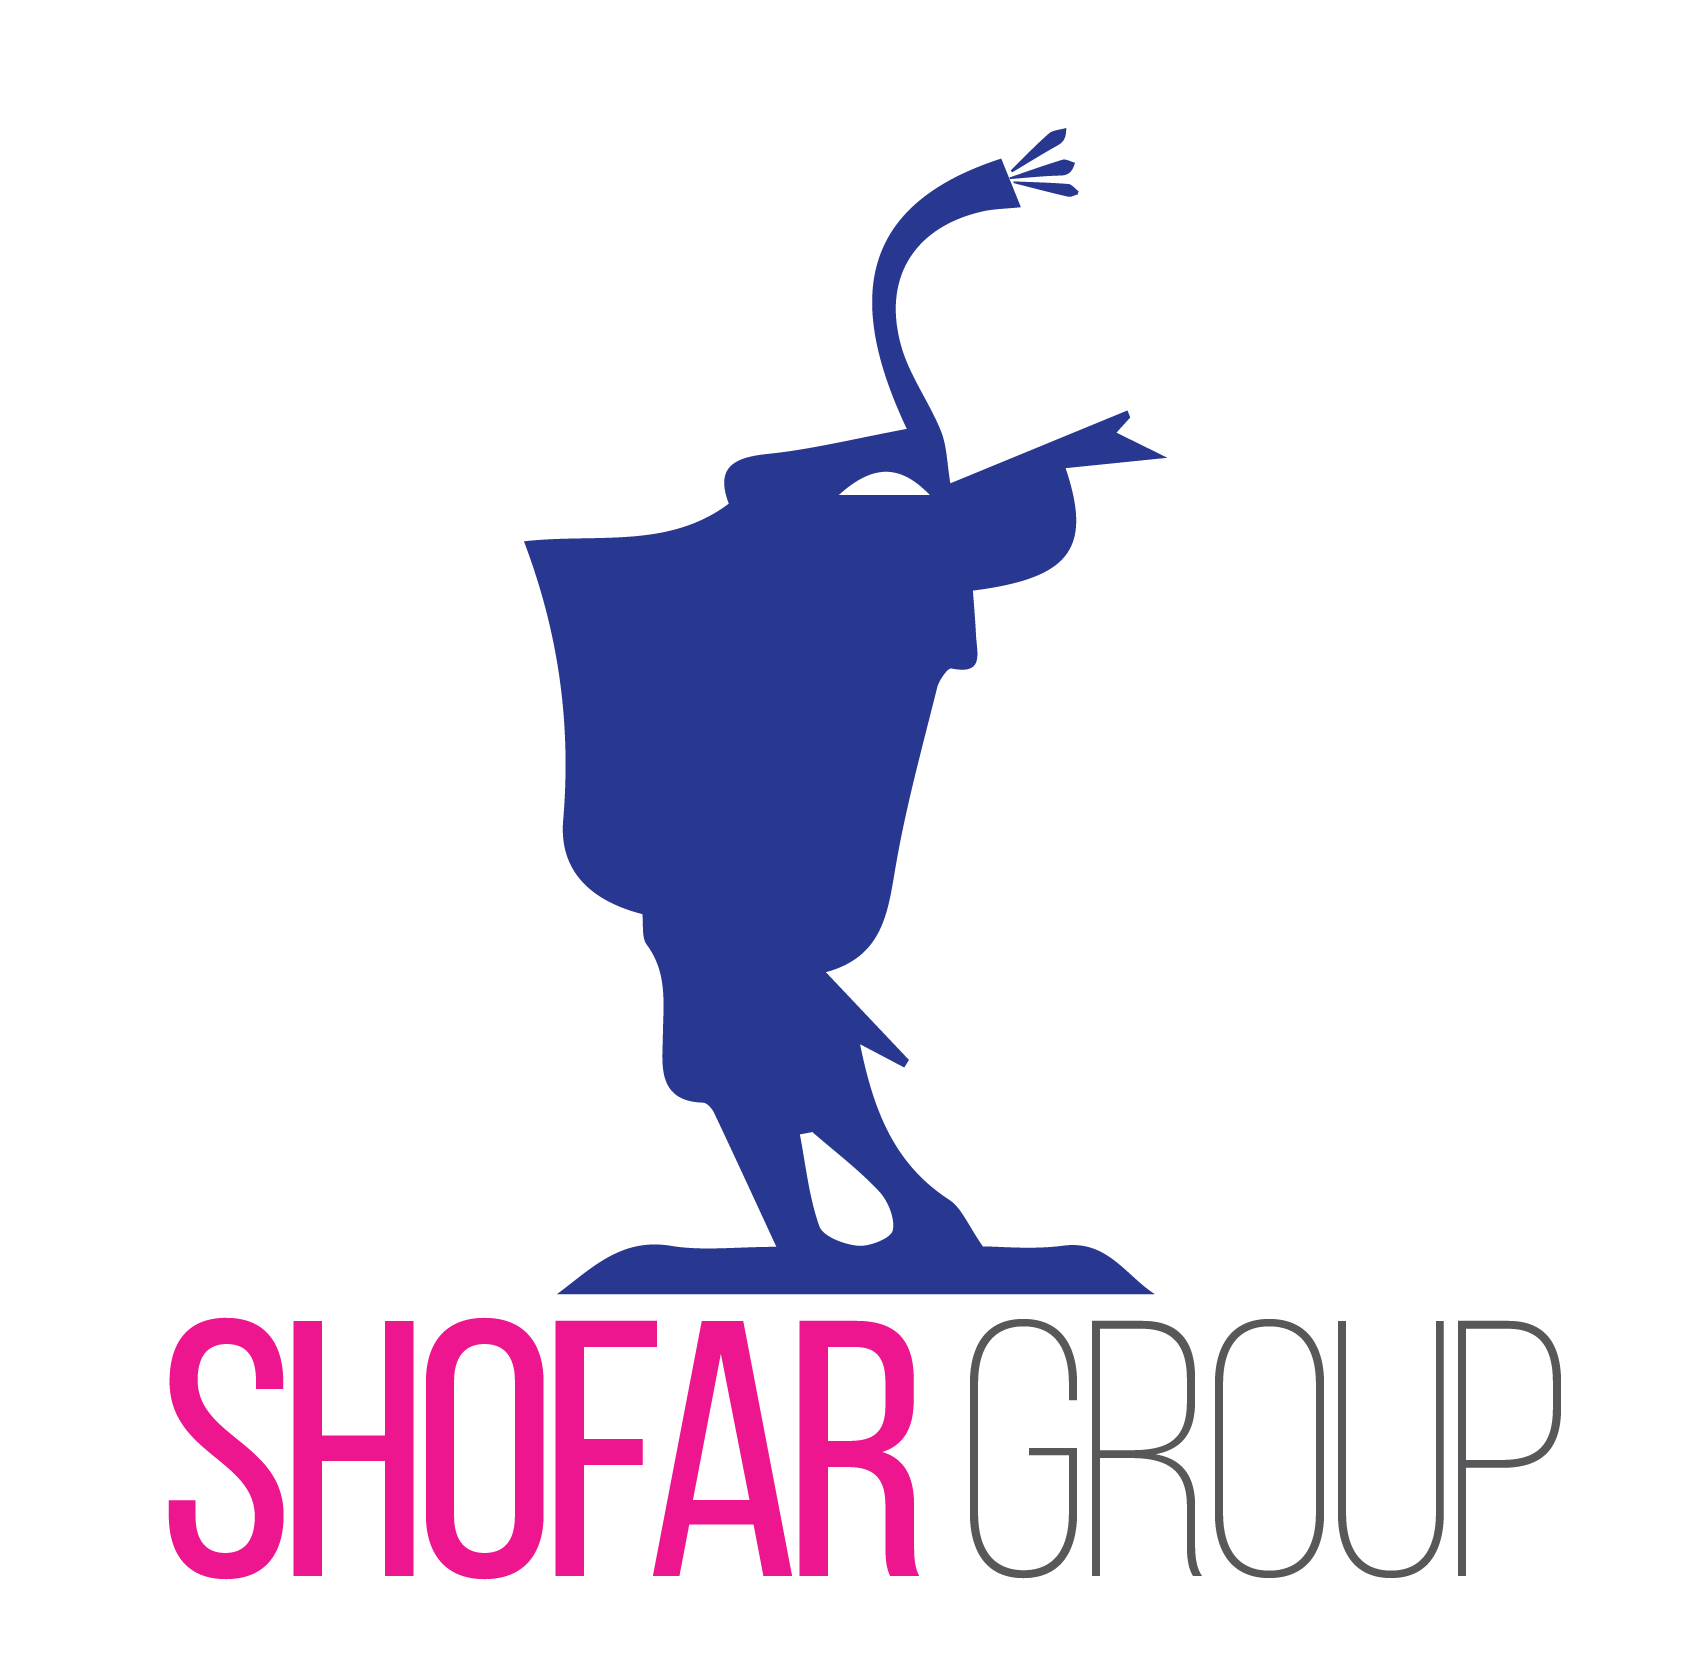 The Shofar Group